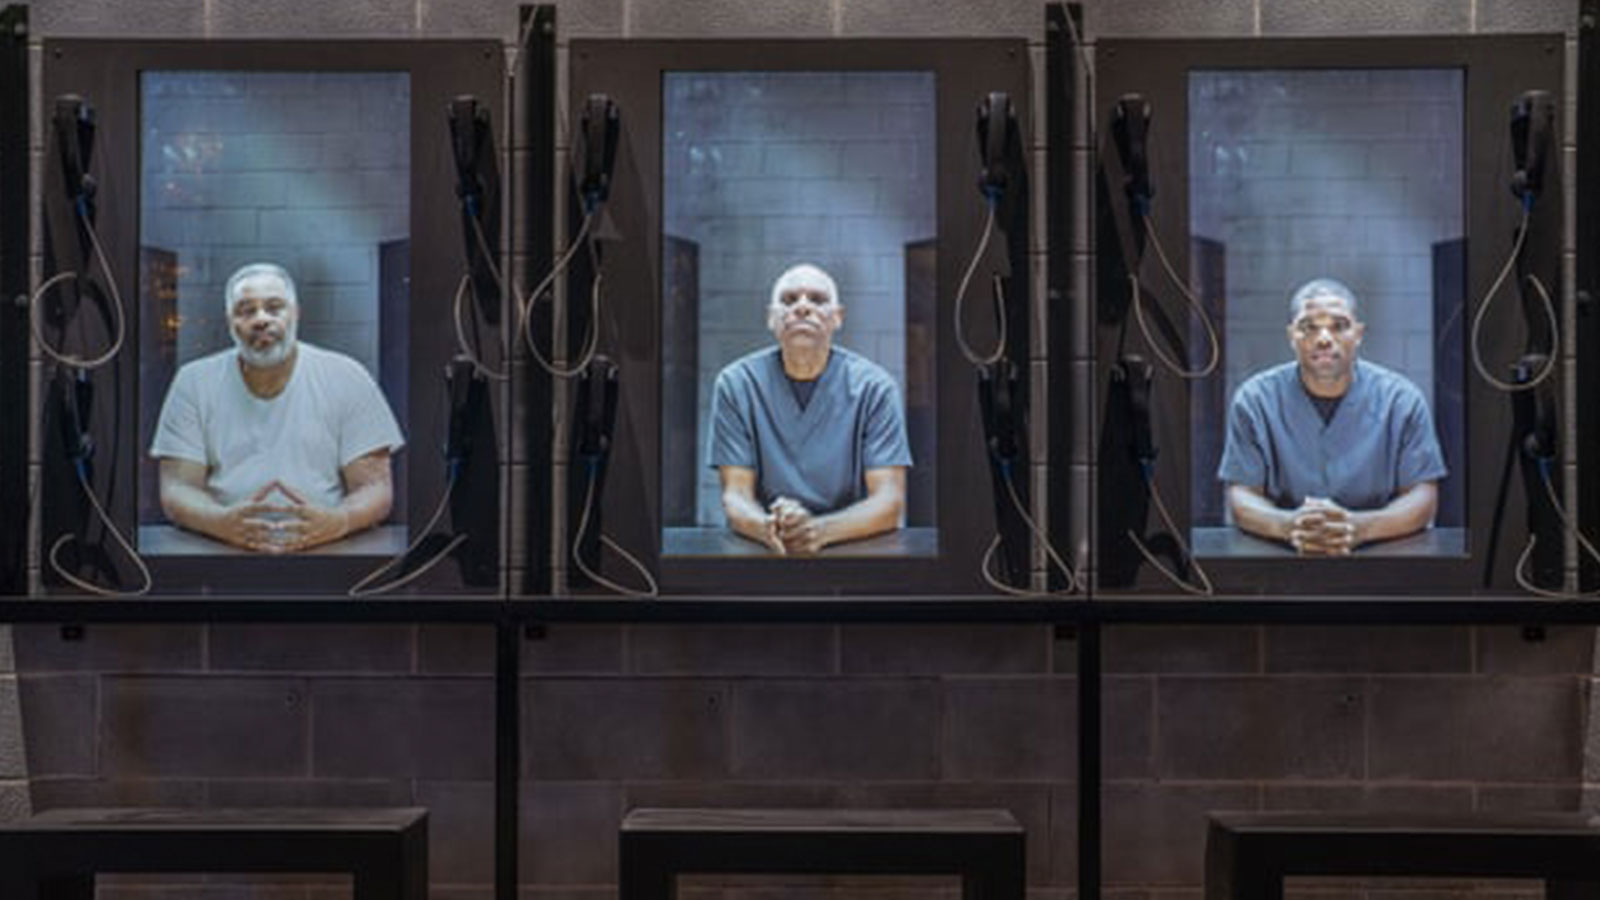 The non-profit Stevenson founded, Equal Justice Initiative, has won reversals, relief or release from prison for more than 140 wrongly condemned prisoners on death row.